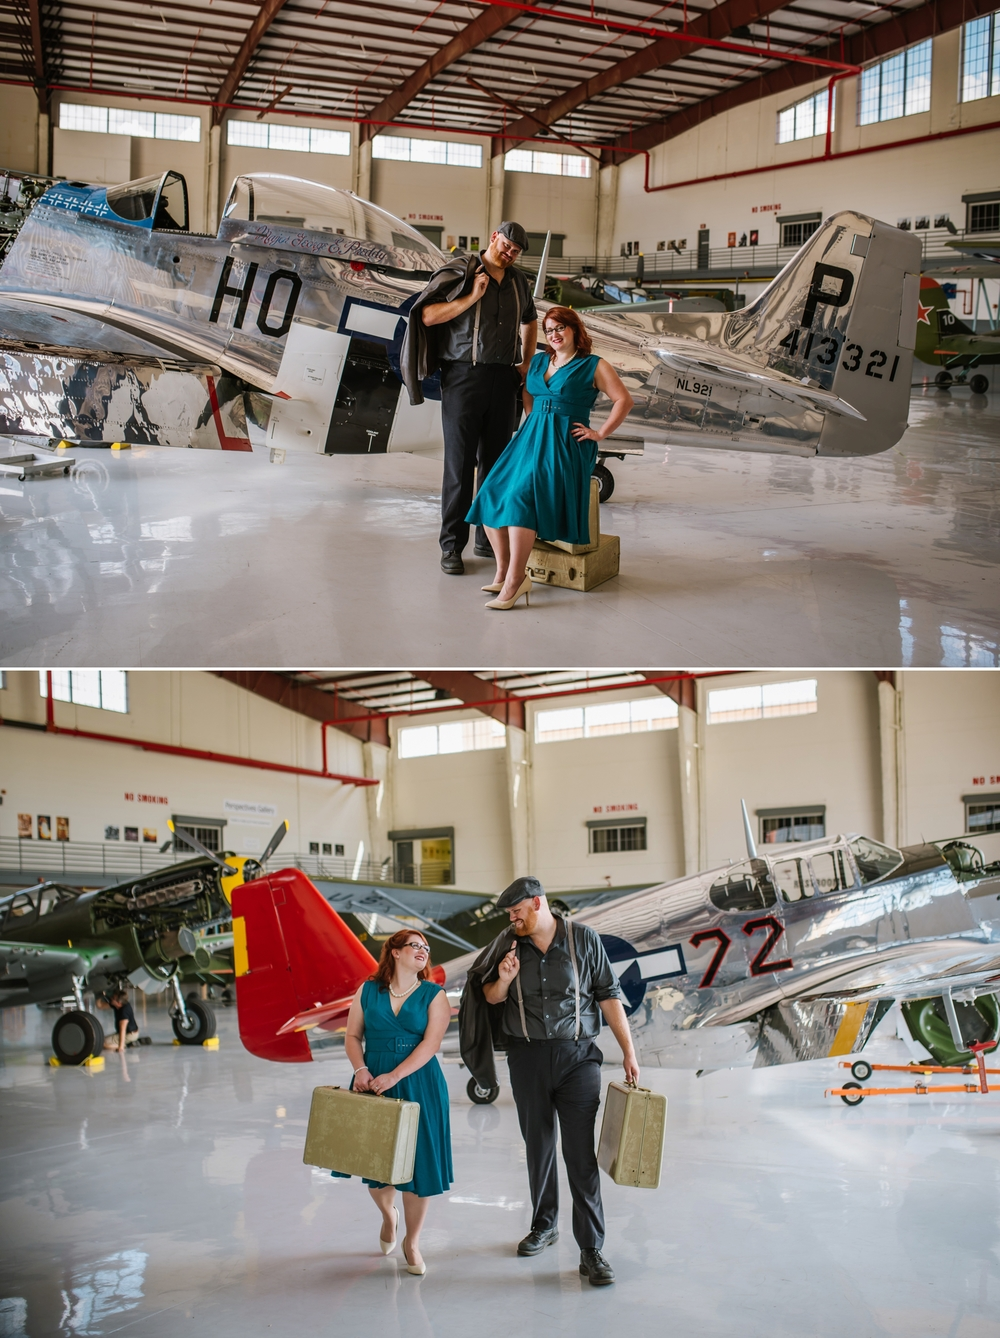 fantasy-of-flight-aviation-themed-engagement-photos-lakeland-florida_0002.jpg